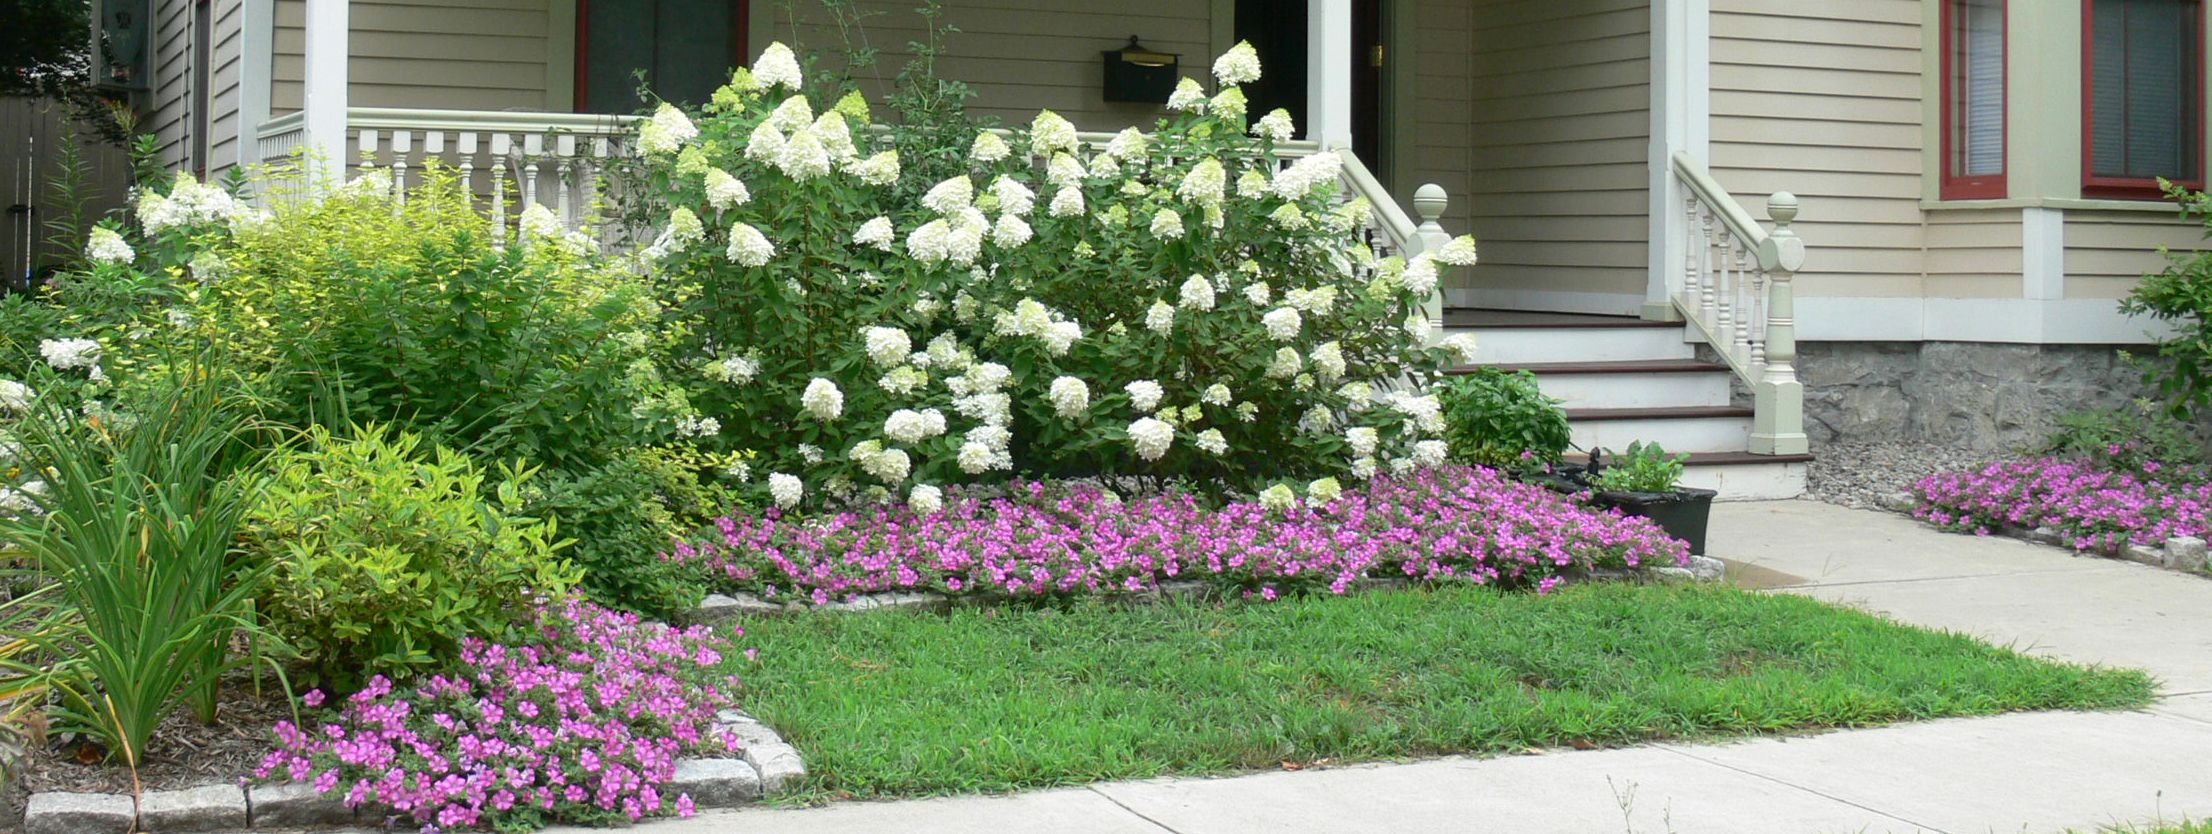 Hydrangeas what 39 s natalie doing curb appeal for Garden designs with hydrangeas